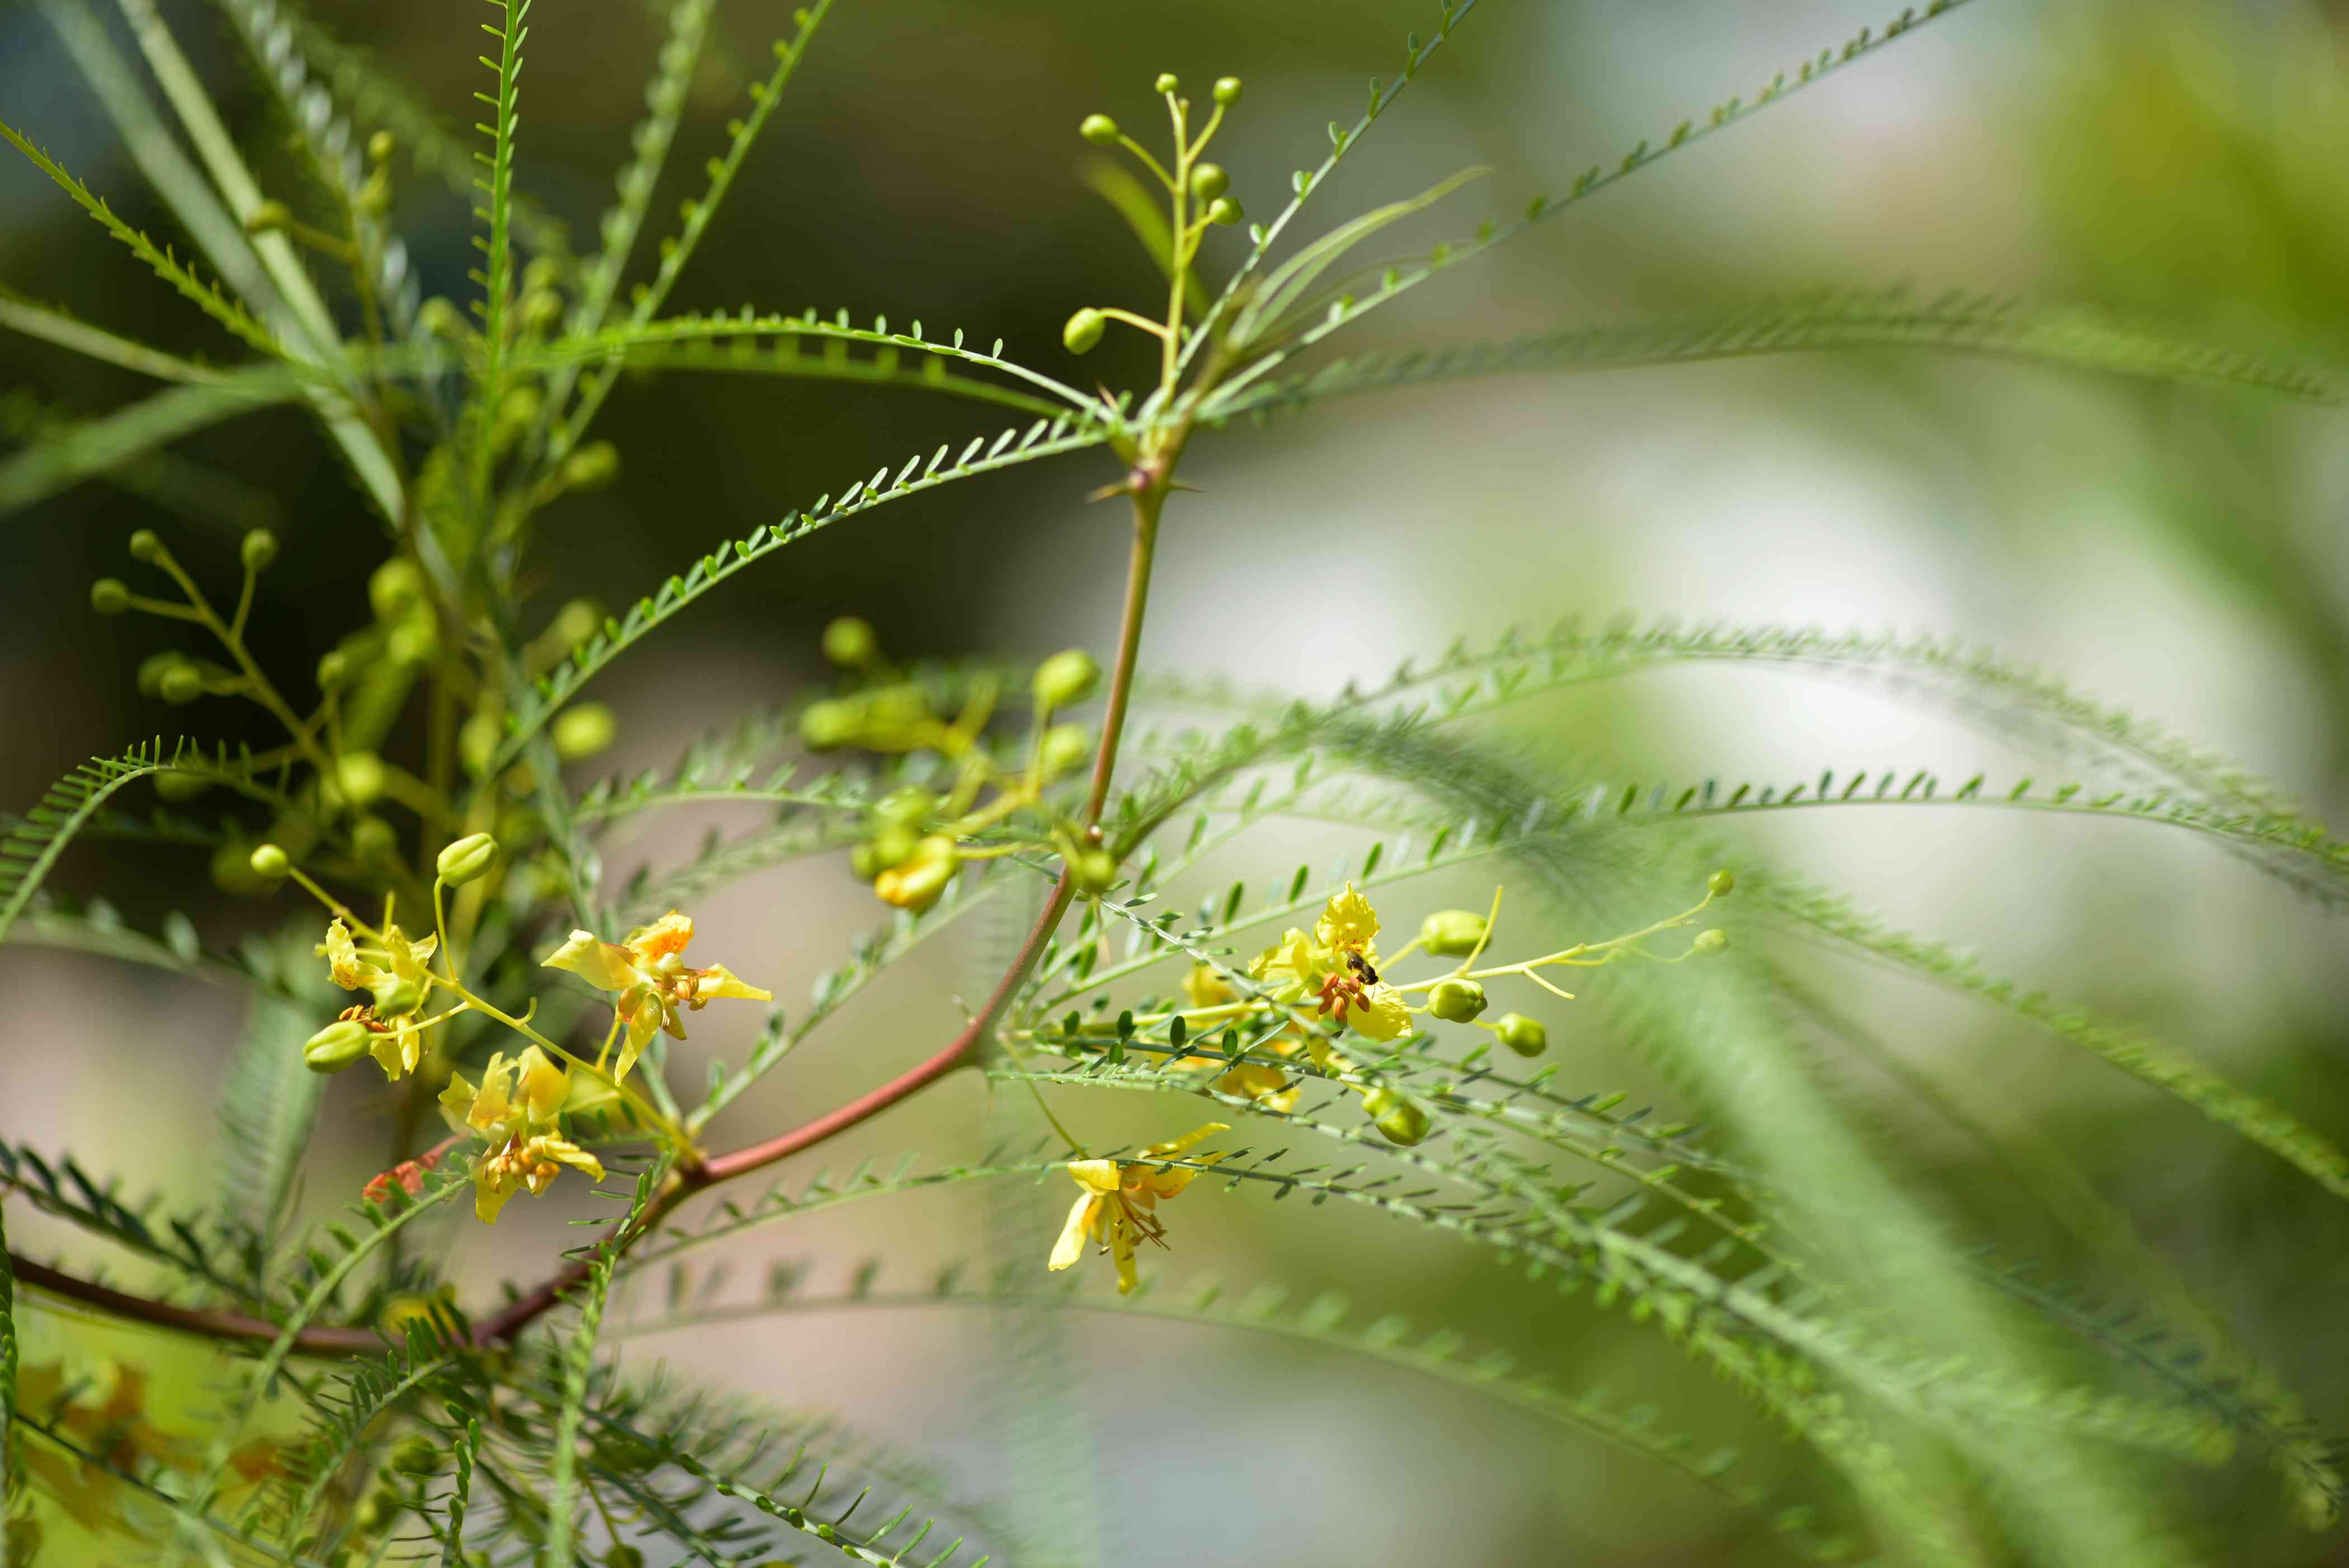 Palo verde tree branch with thin and long leaf stems and small yellow flowers with buds closeup